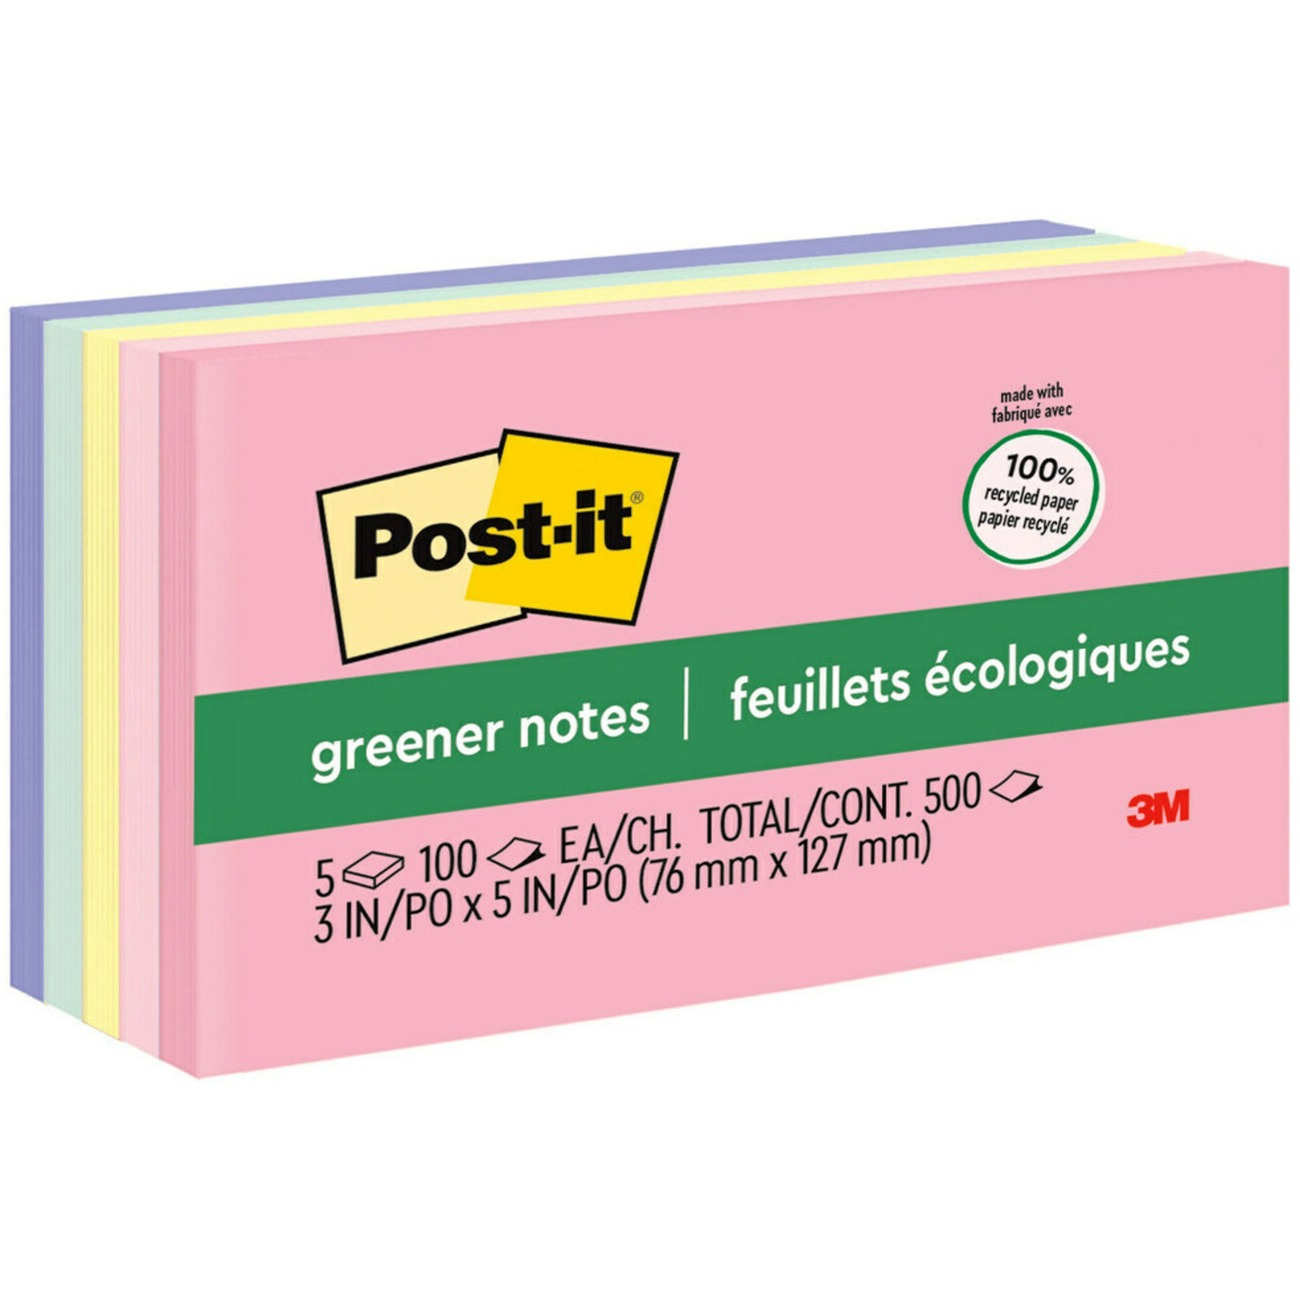 Postit greener notes glass u0026 cork notes dispenser lime jack 100 stick paper vector of happy cartoon boy drawing stick f pronofoot35fo Images